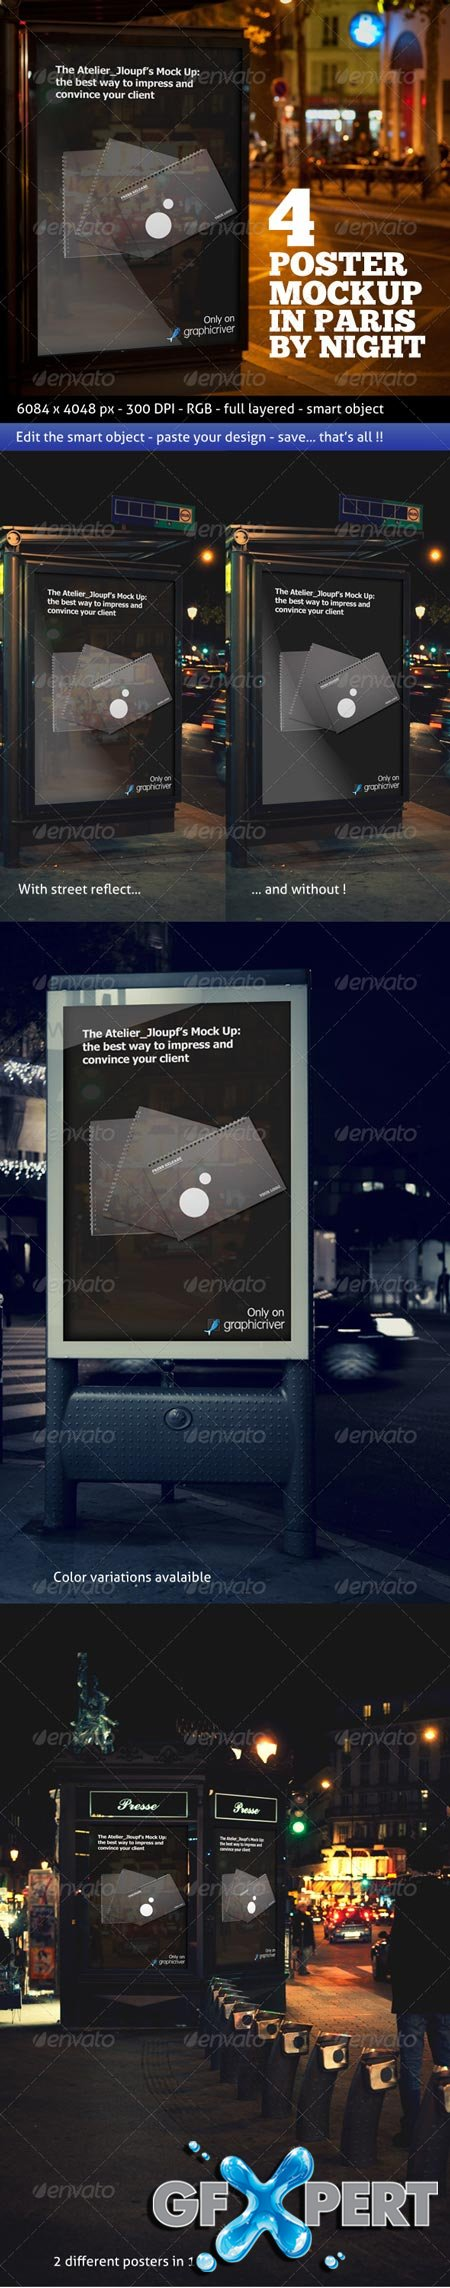 Photorealistic Poster Mockup In Paris By Night wovide